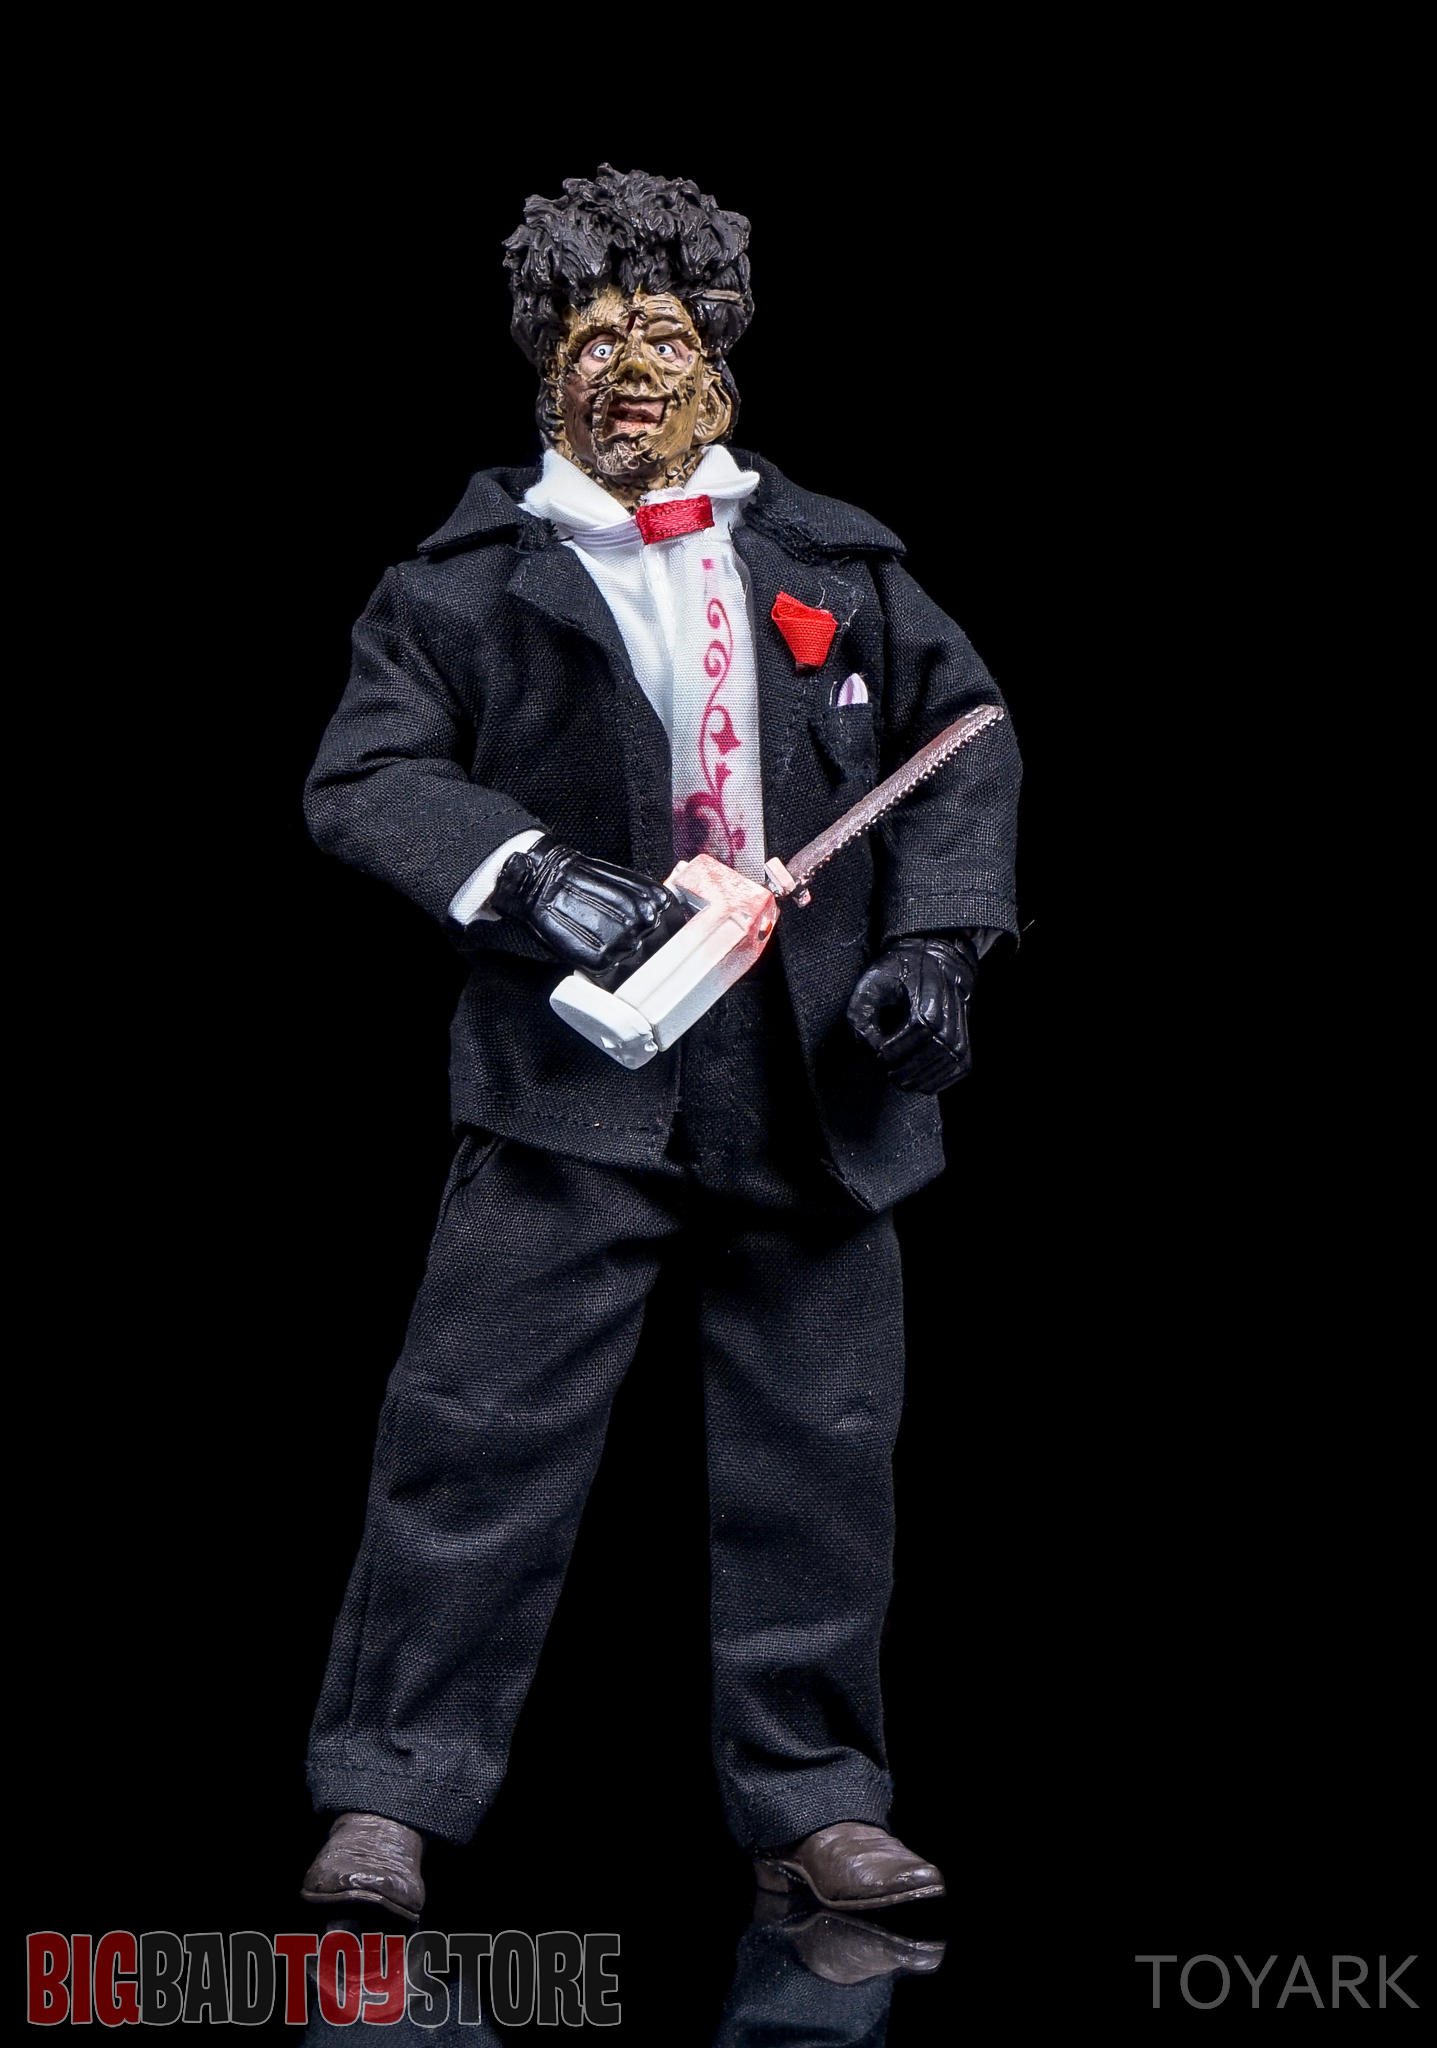 http://news.toyark.com/wp-content/uploads/sites/4/2016/07/NECA-TCM2-Leatherface-028.jpg